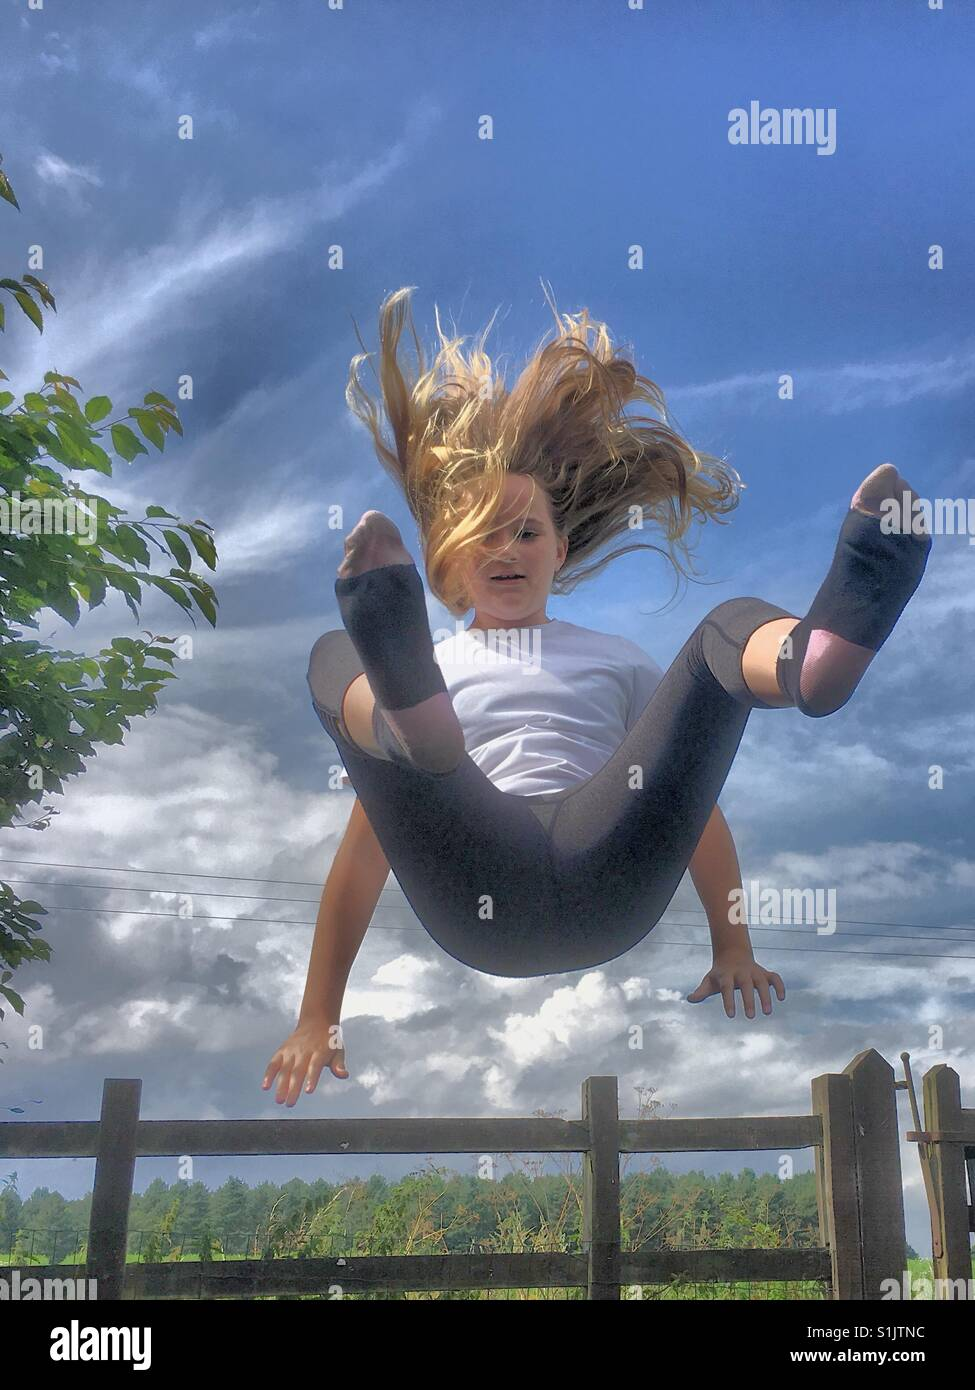 Girl bouncing on a trampoline outdoors - Stock Image